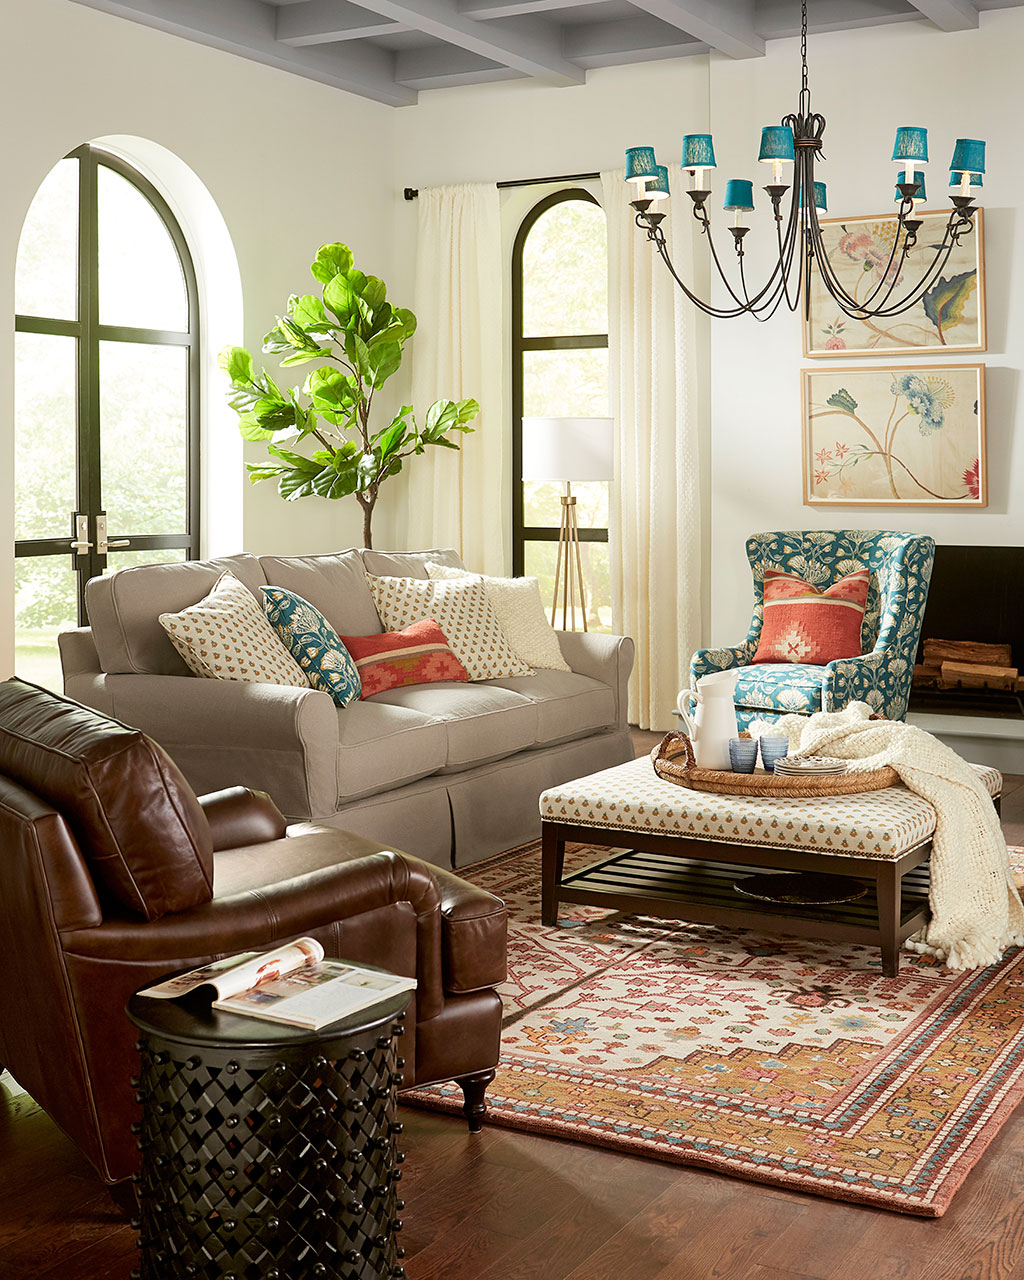 Small Living Room Ideas for More Seating and Style on Small Living Room Ideas 2019  id=19237